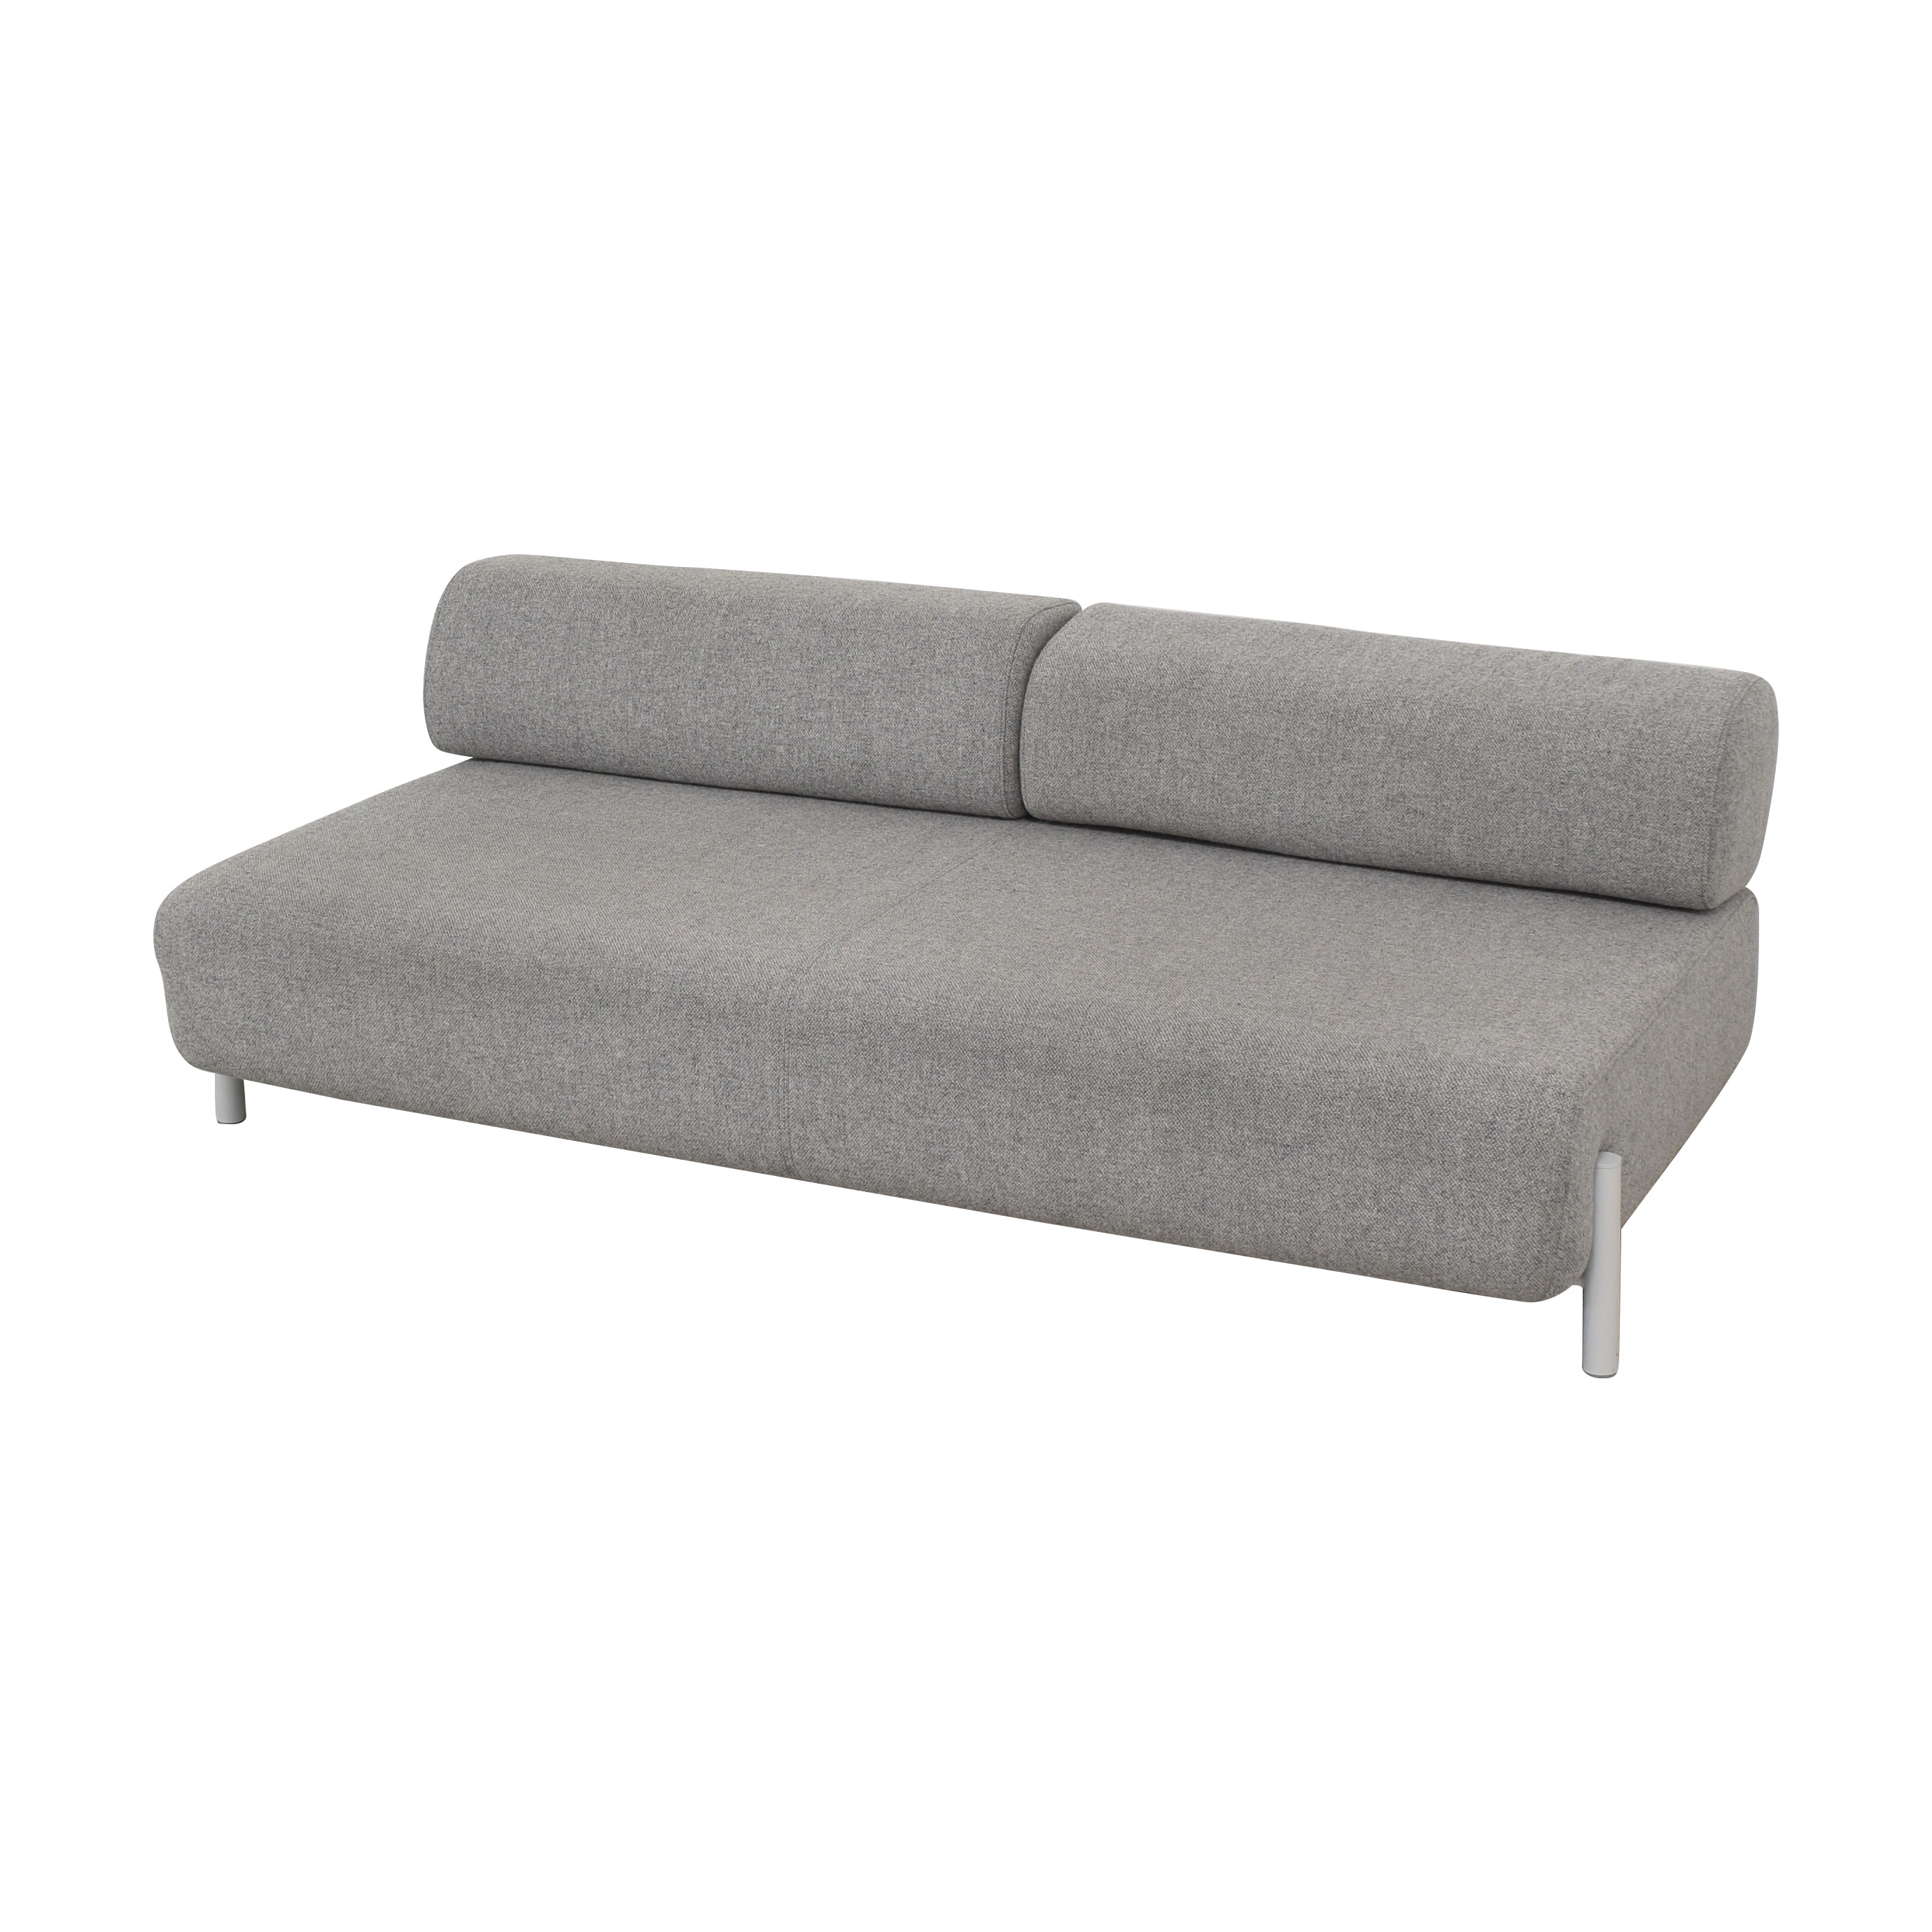 Hem Hem Palo Modular 2-Seater Sofa and Ottoman price